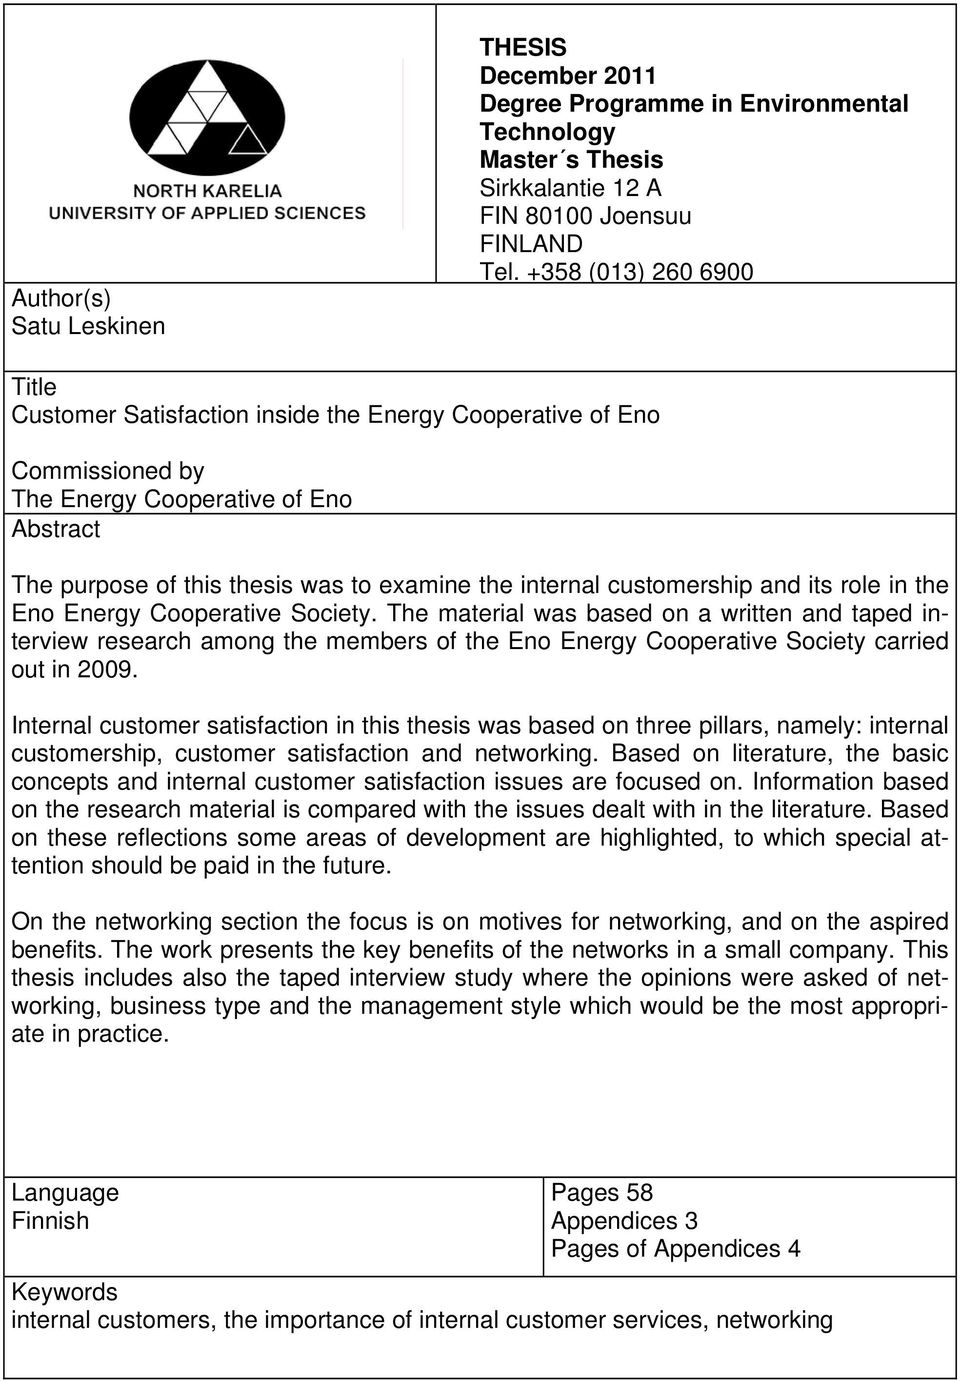 customership and its role in the Eno Energy Cooperative Society.